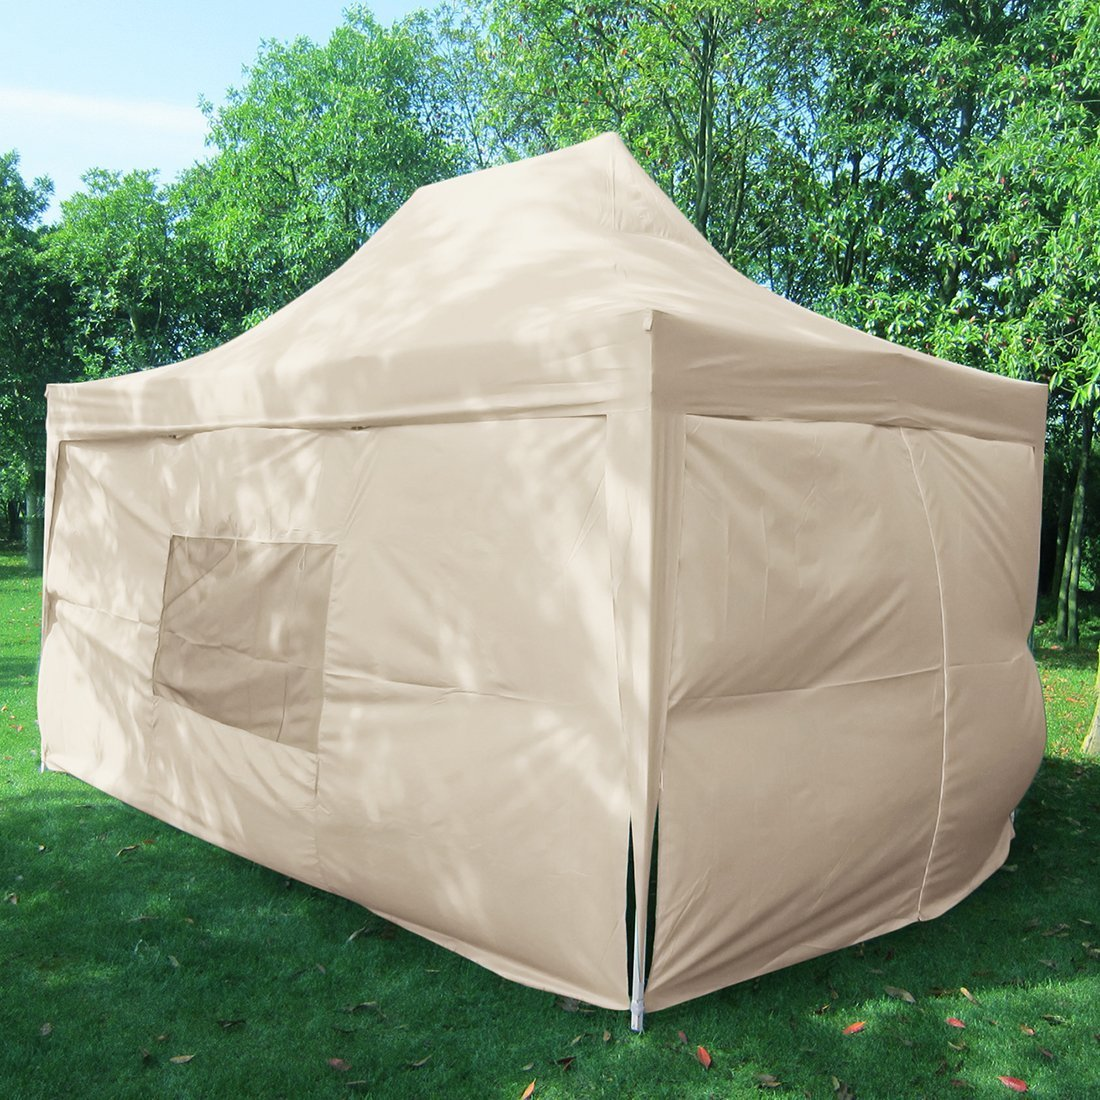 Quictent Privacy 10x15 EZ Pop Up Canopy Party Tent Gazebo 100% Waterproof with Sides and Mesh Windows Beige